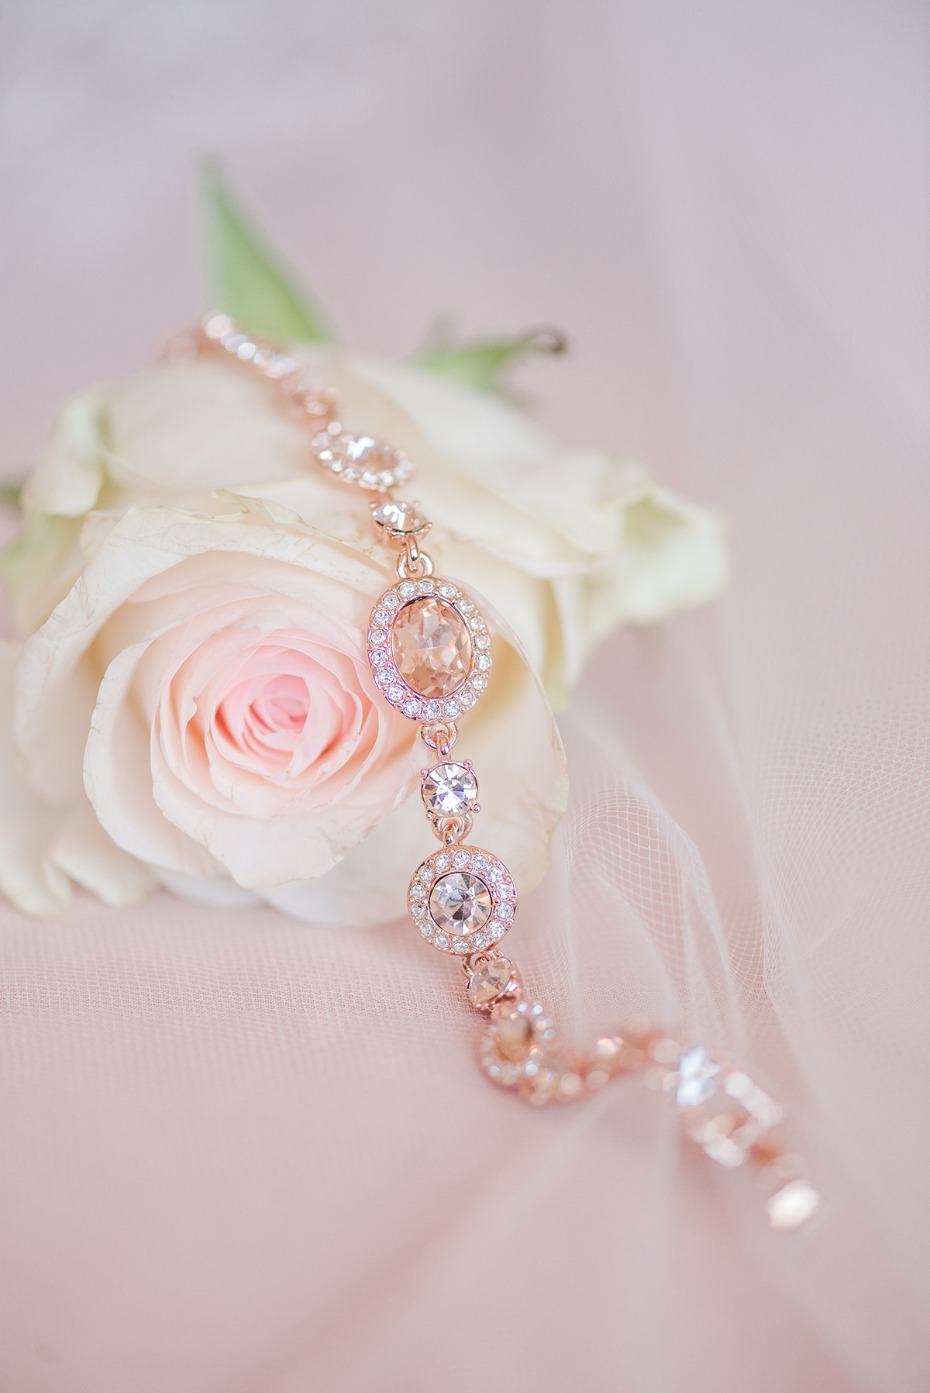 rose gold and diamond bracelet